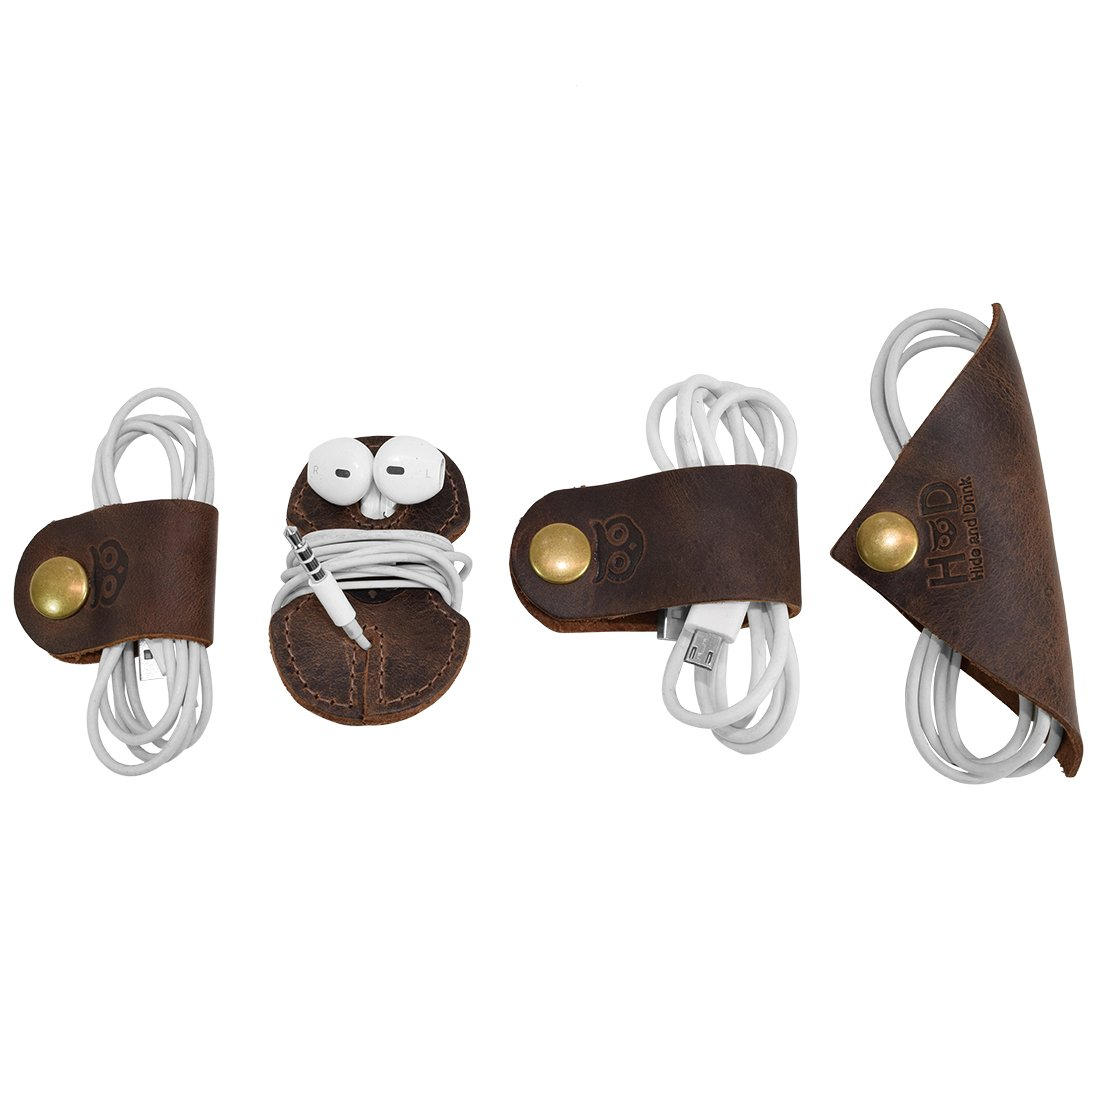 Rustic Cord Keeper (Cord Clam) 4-Pack Handmade by Hide & Drink :: Bourbon Brown